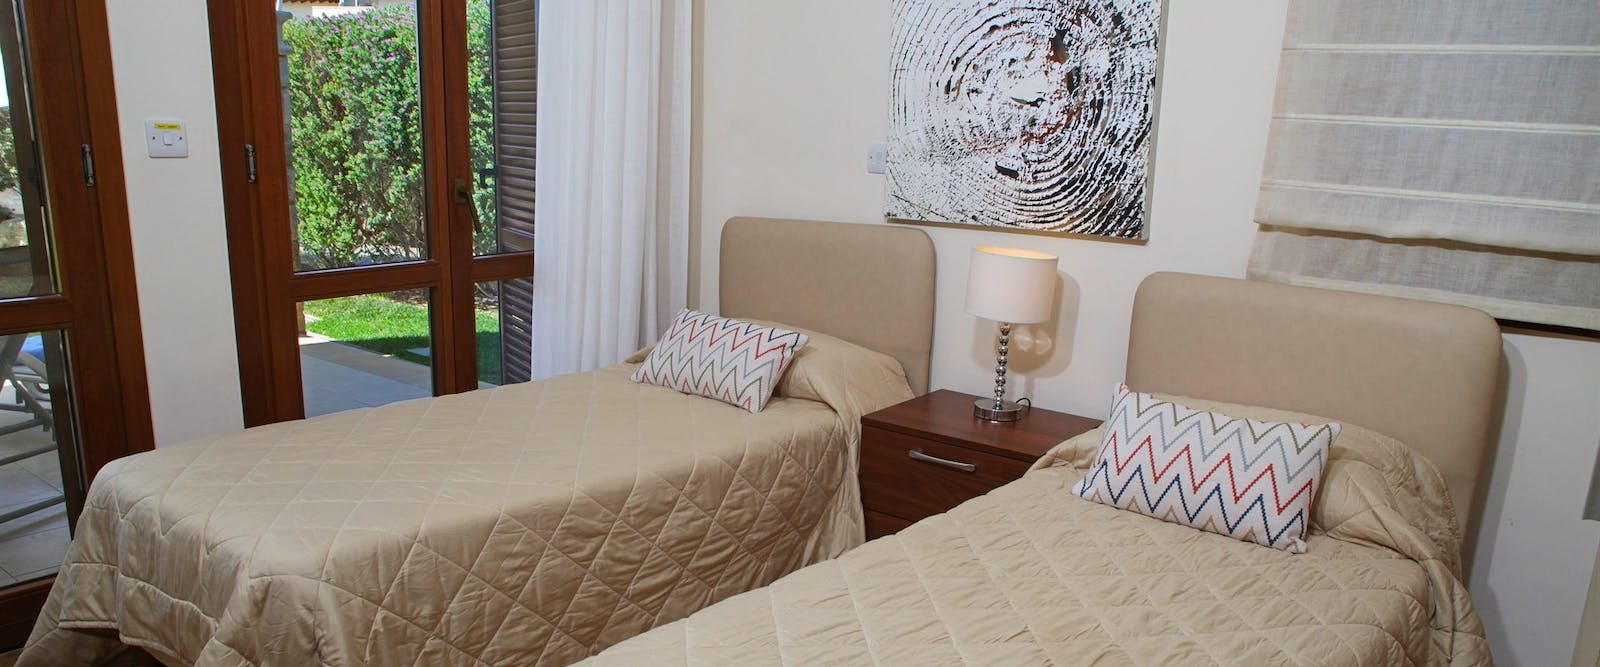 Twin Room Apartment at Aphrodite Hills Holiday Residences - Villas & Apartments, Paphos, Cyprus